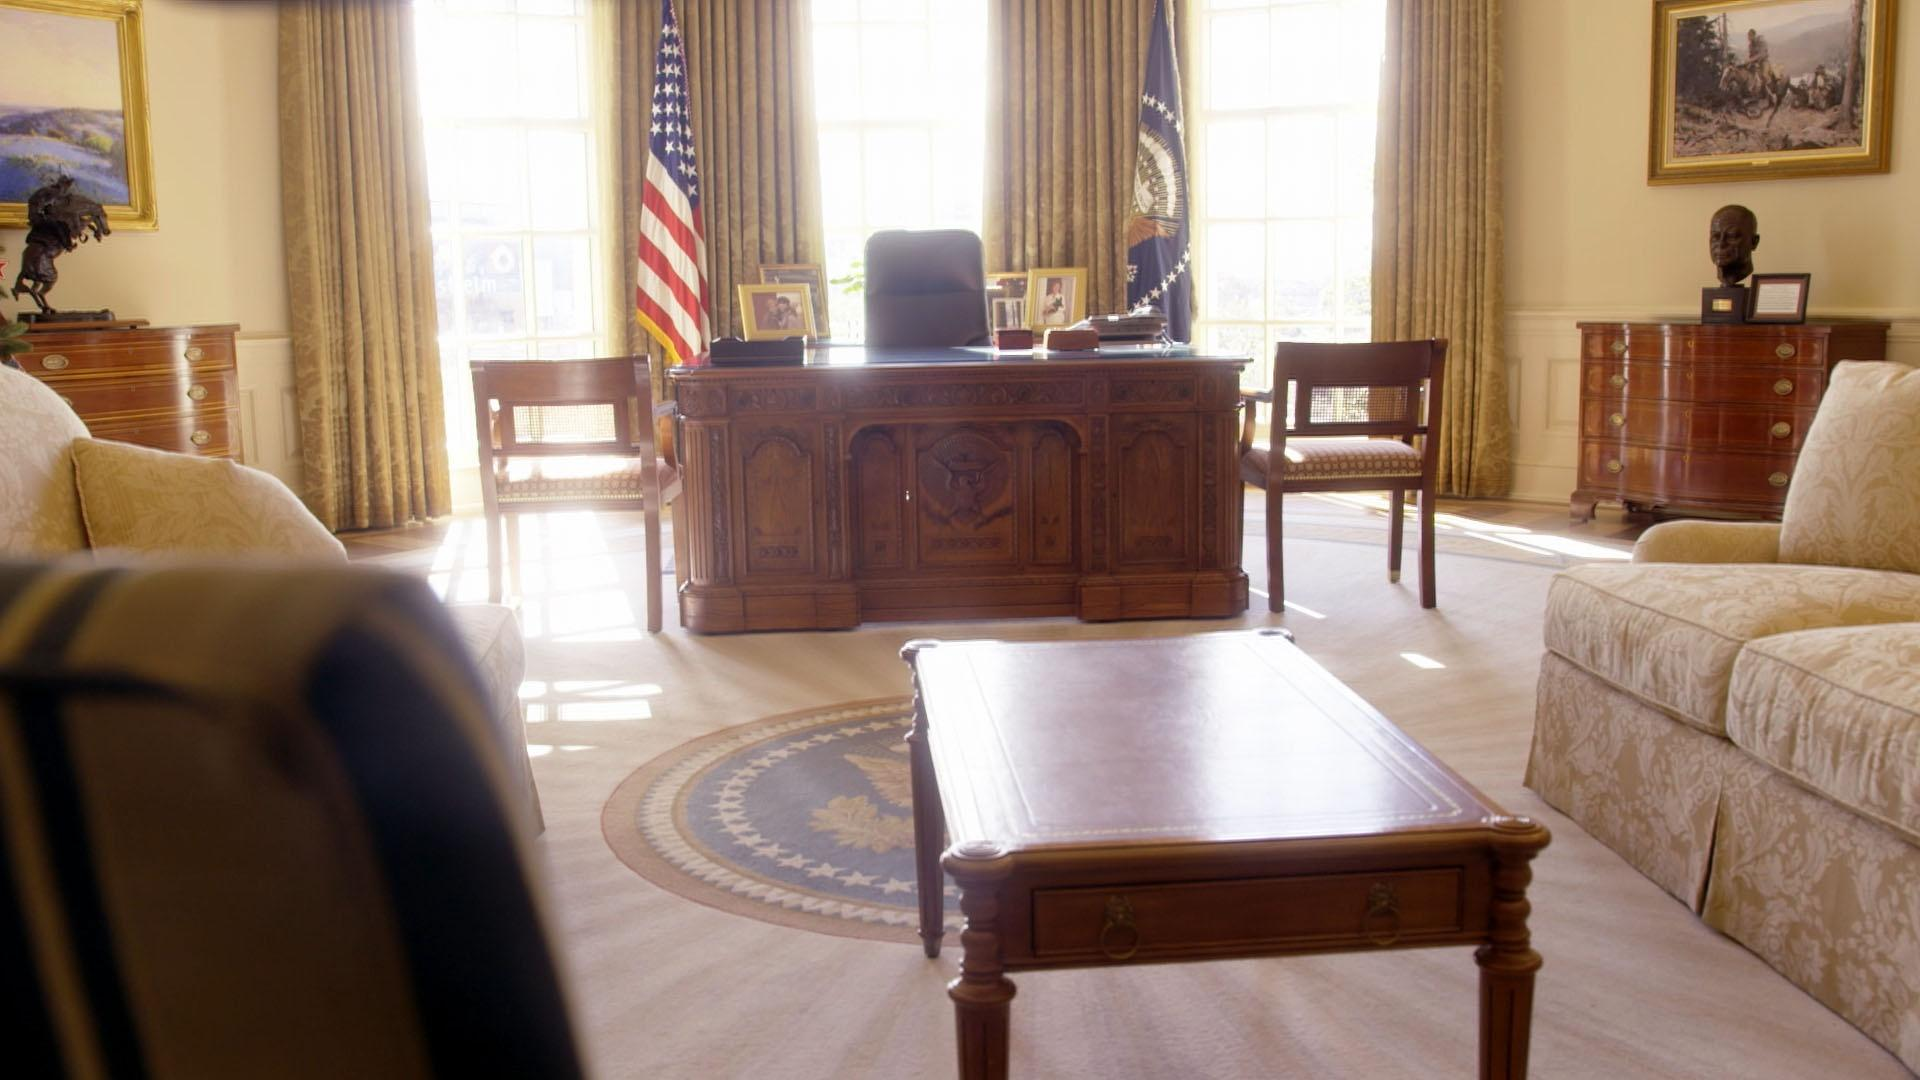 Superb The White House: Inside Story: The Oval Office